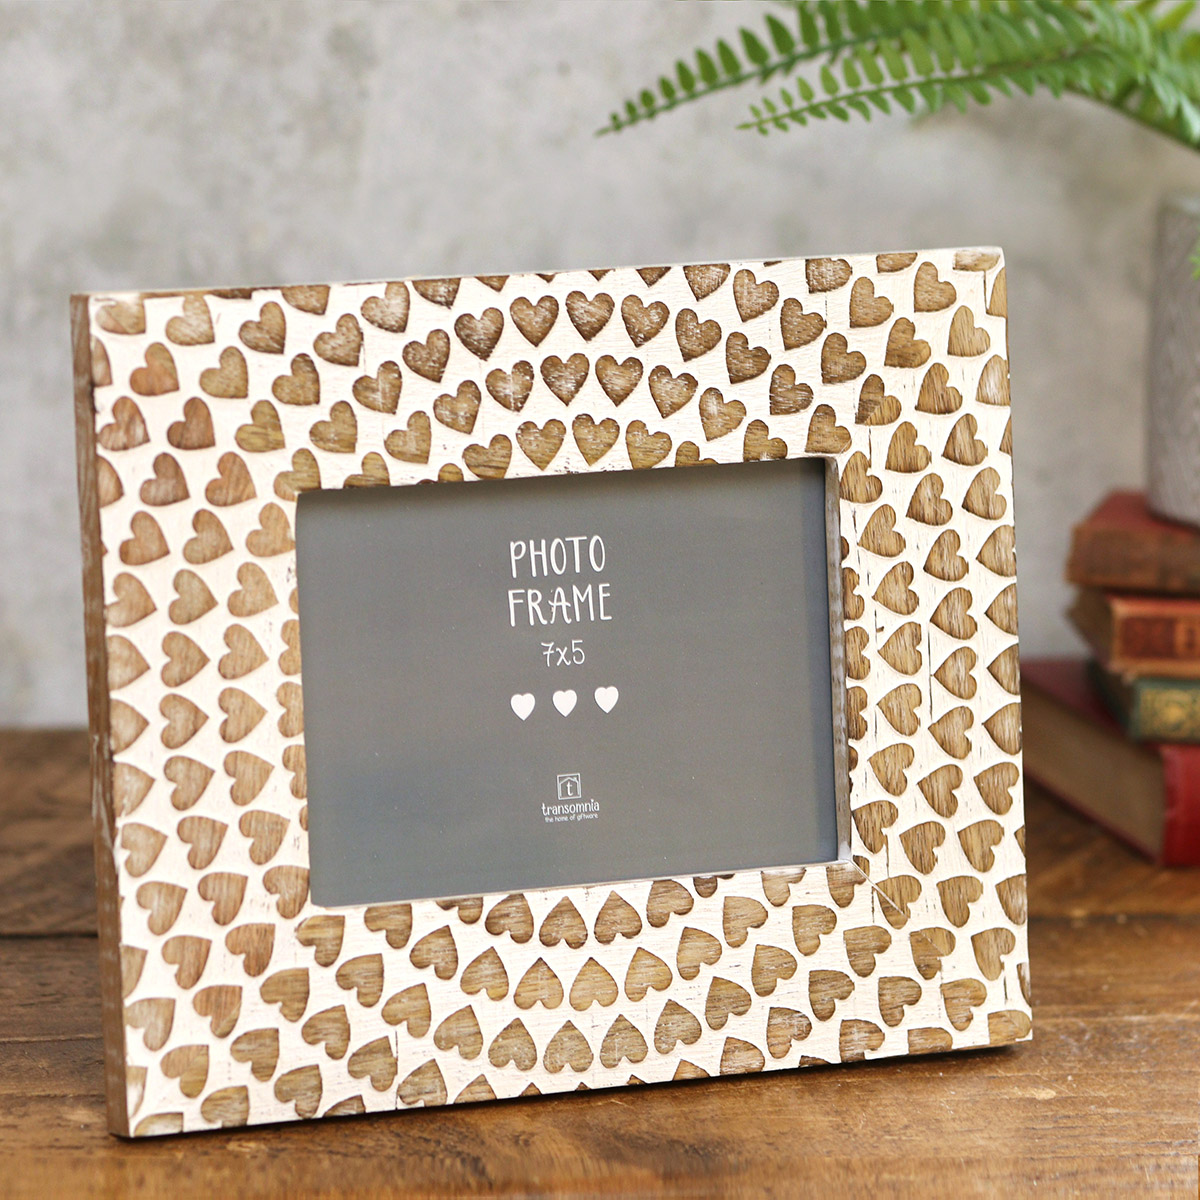 Transomnia Carved Wooden Hearts Photo Frame 7 x 5